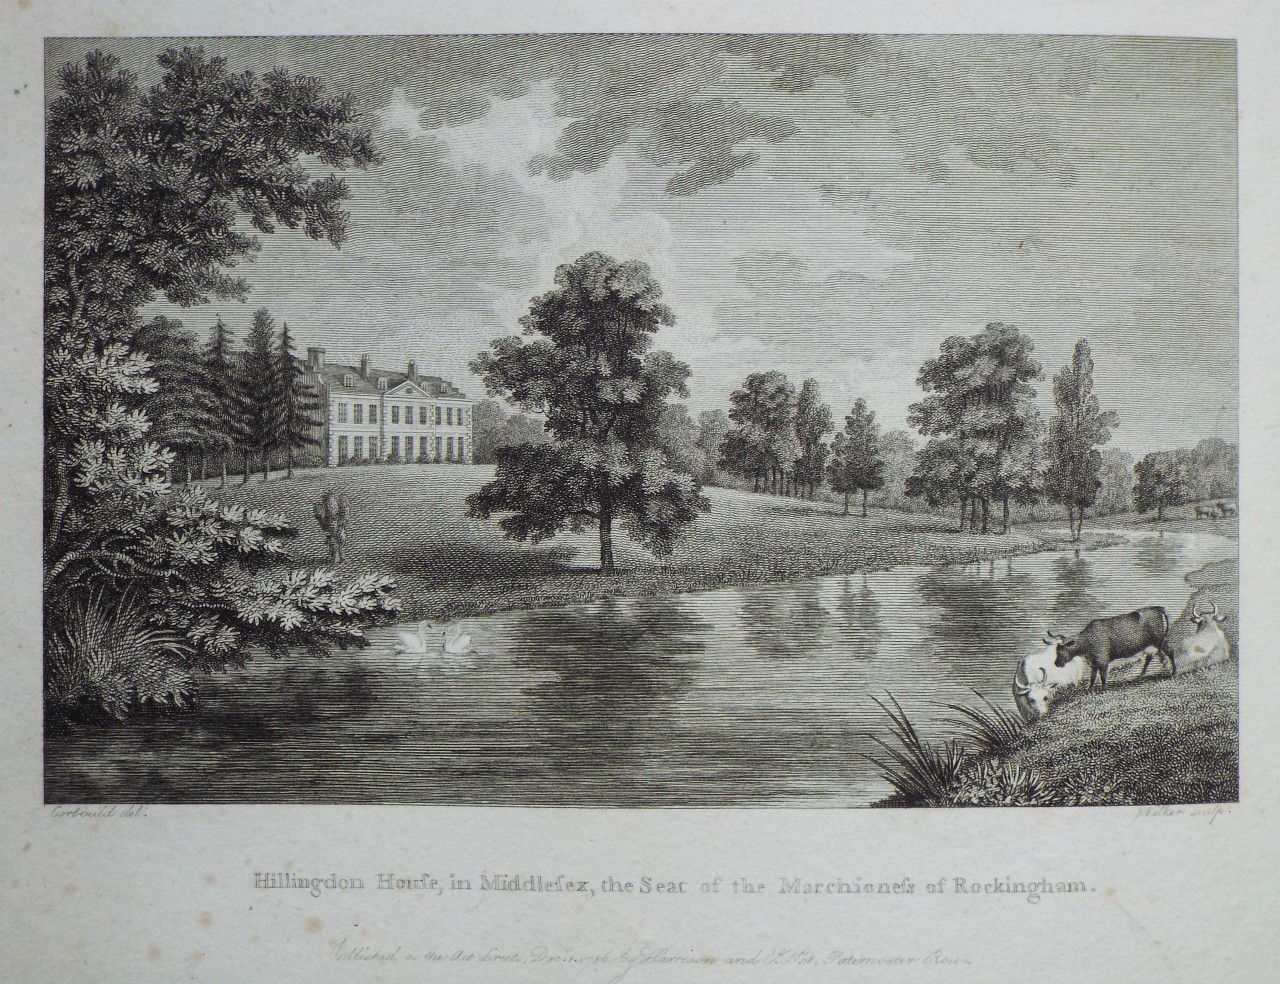 Print - Hillingdon House, in Middlesex, the Seat of the Marchioness of Rockingham. -